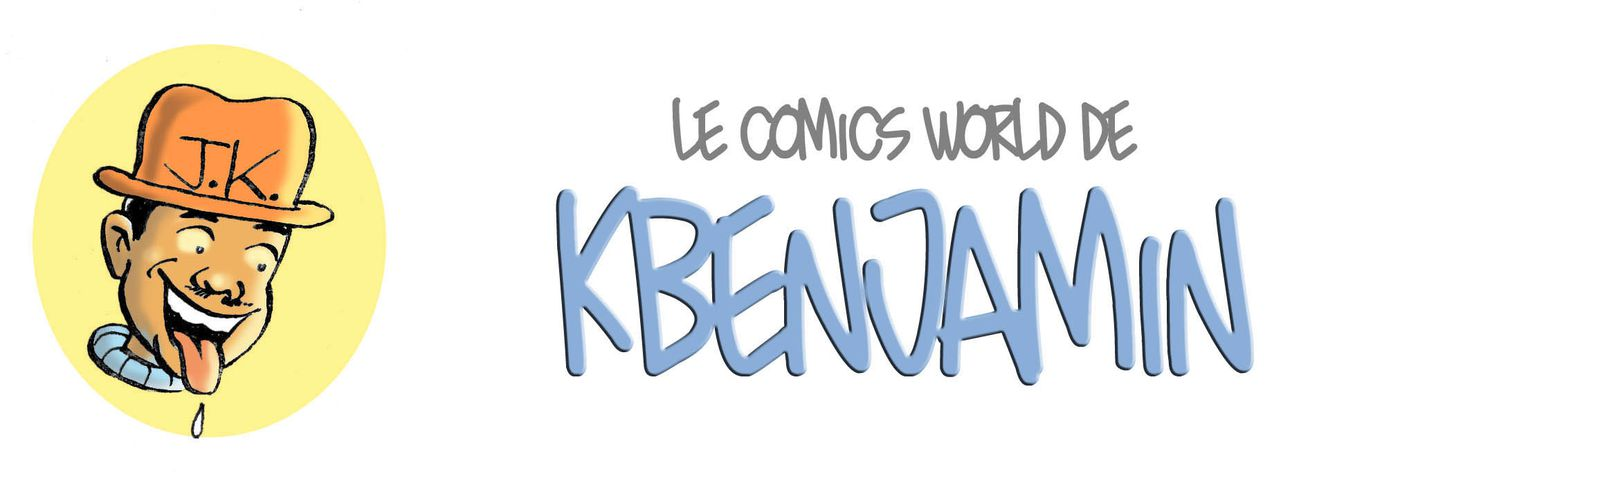 Le-comics-world-de-Kbenjamin-header--copie1.jpg